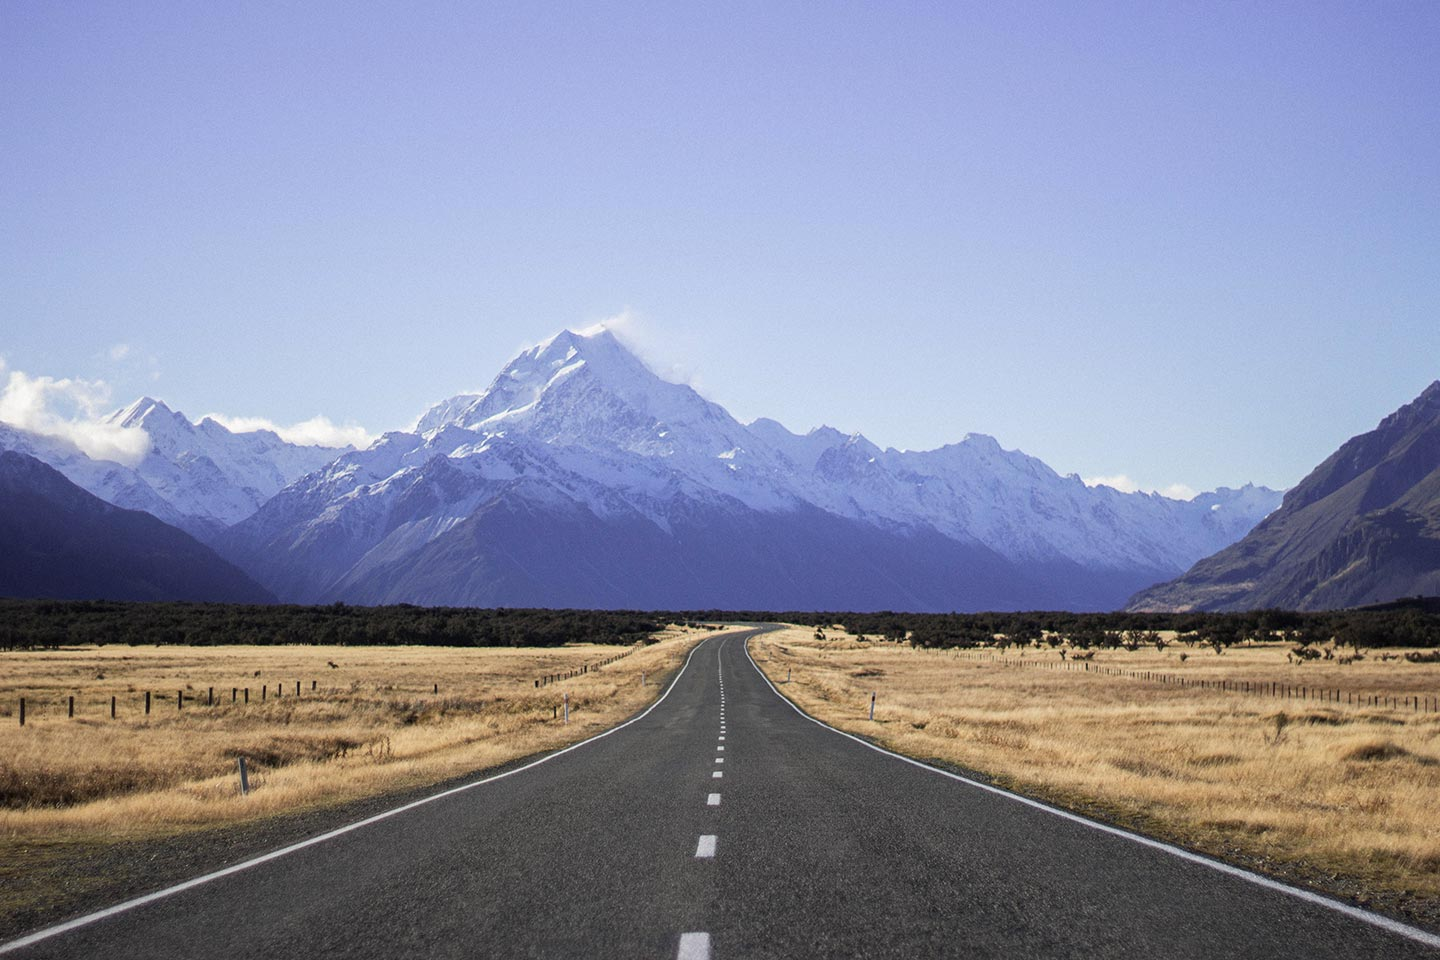 A road leading towards a large mountain range in New Zealand. This is a perfect example of a landscape photographer using leading lines in their photos.